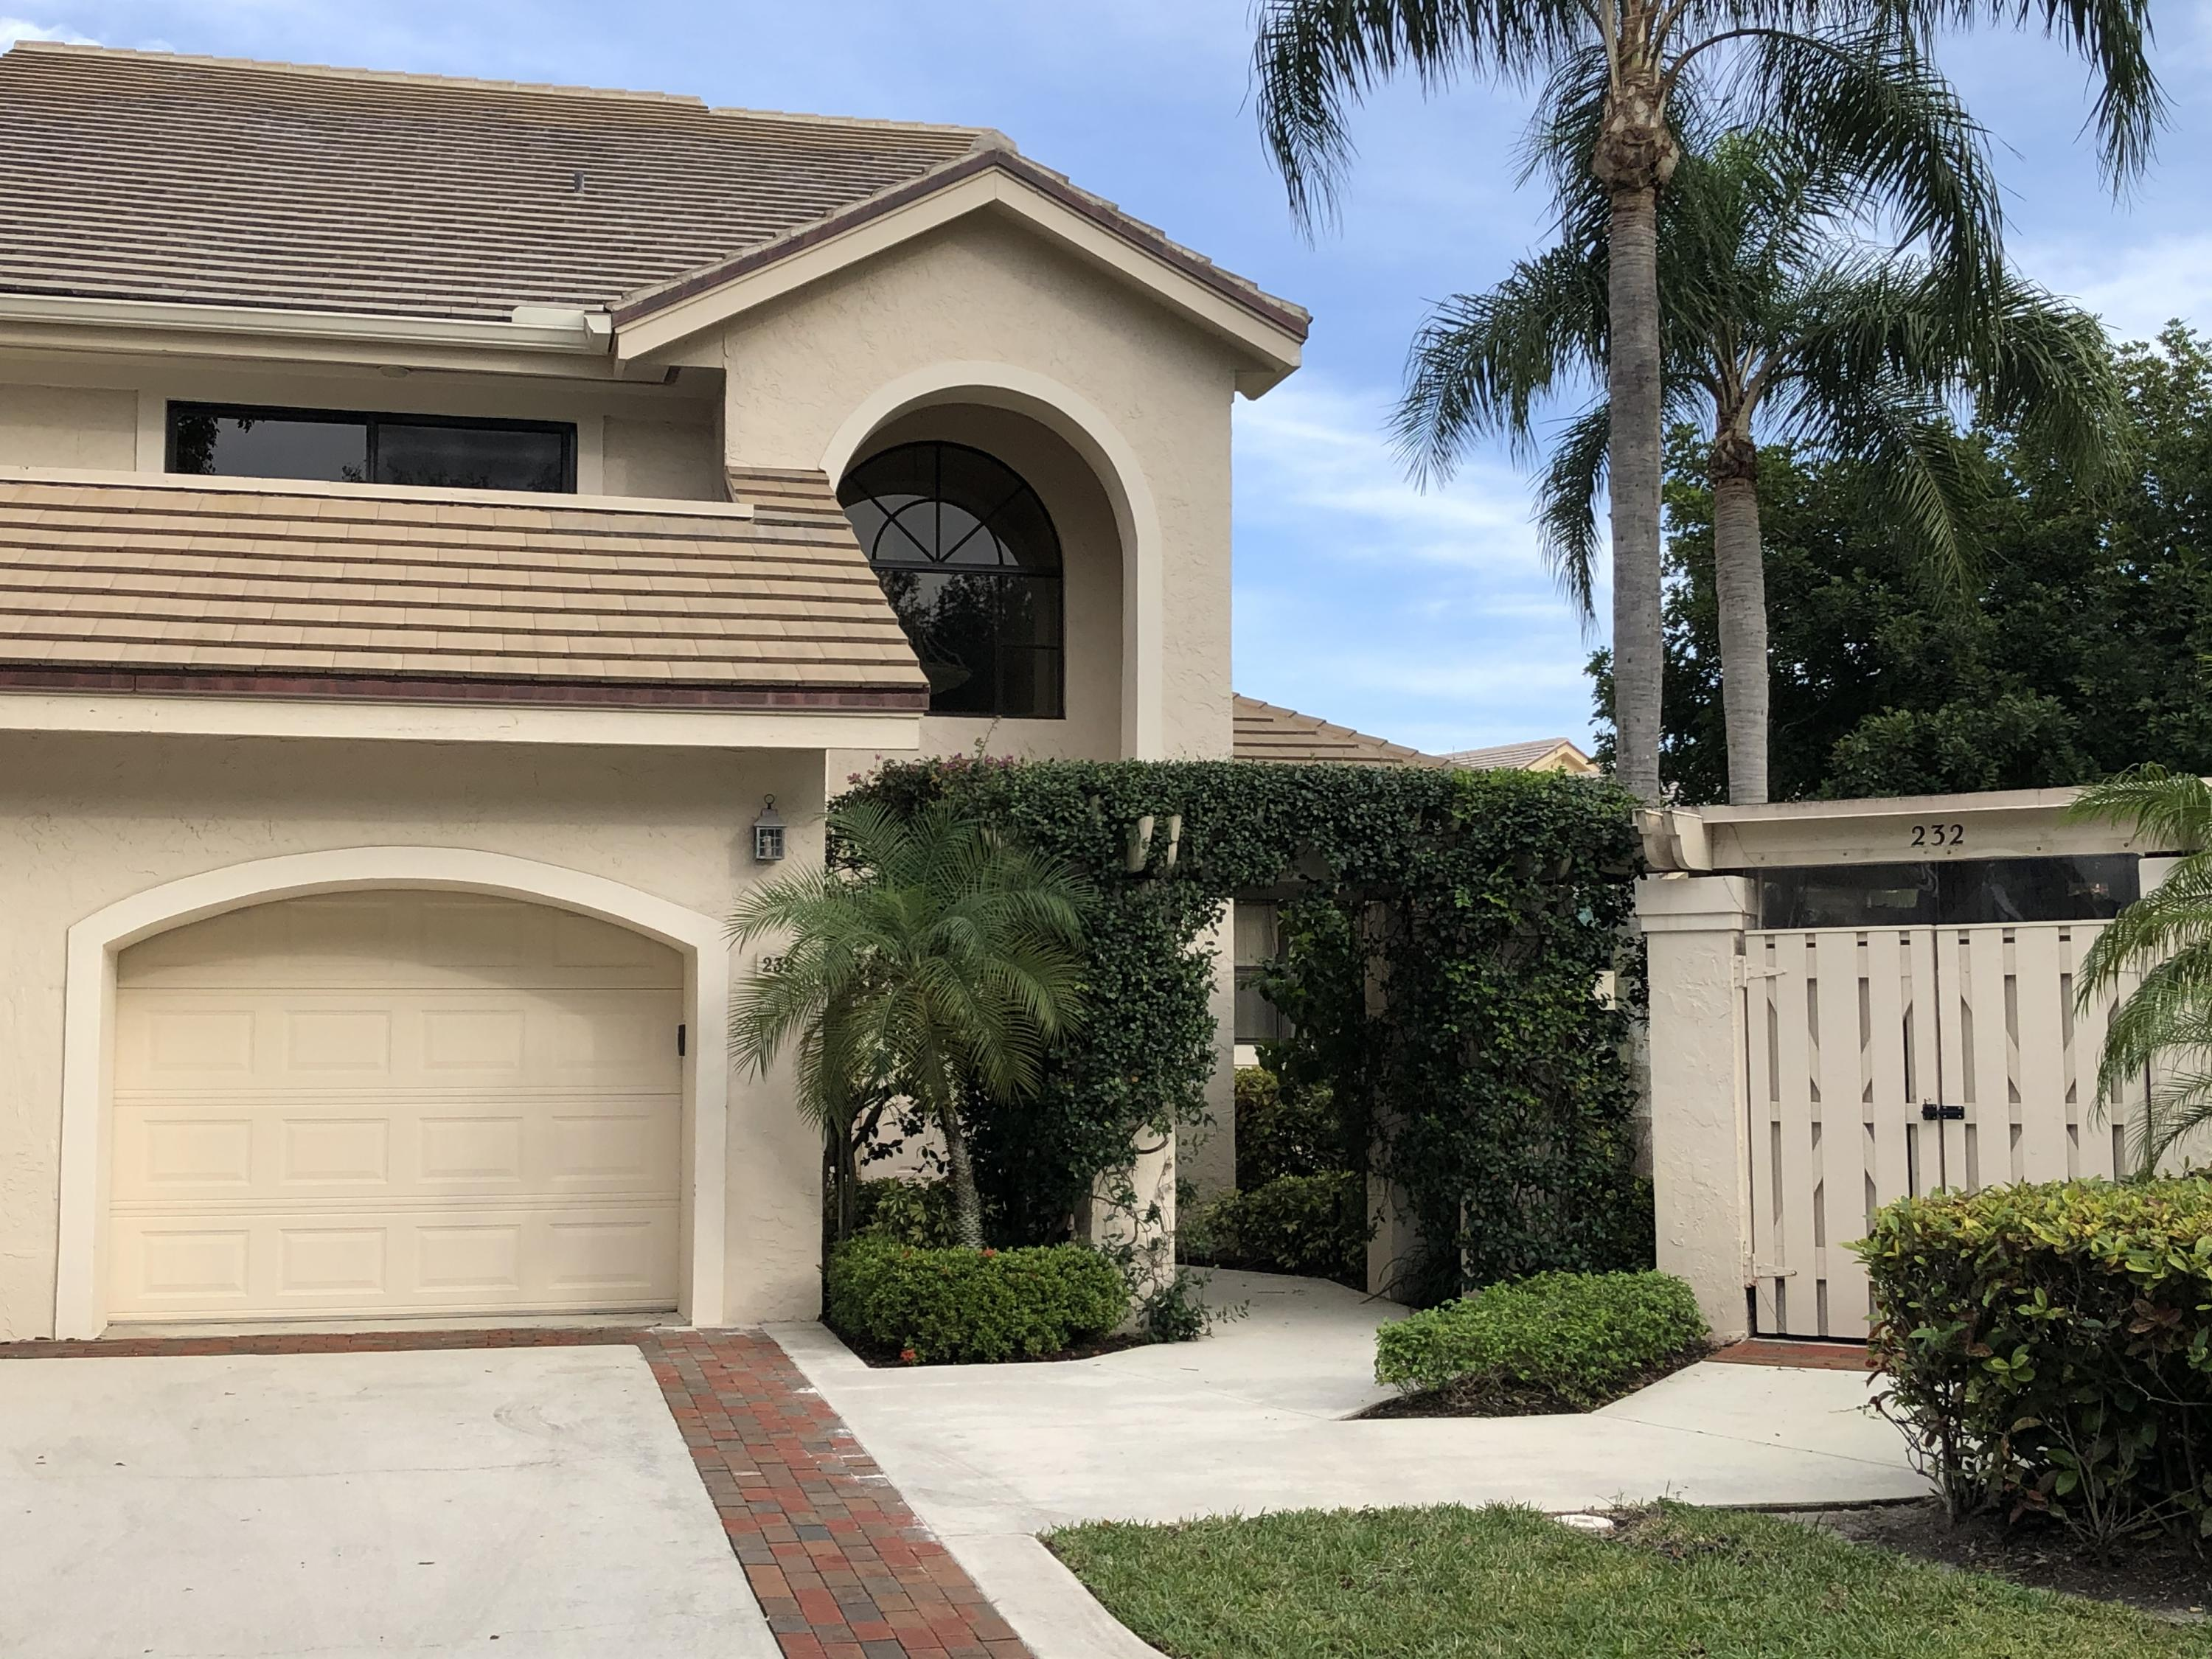 16870 Island Cove Drive 232, Jupiter, Florida 33477, 3 Bedrooms Bedrooms, ,2 BathroomsBathrooms,F,Condominium,Island Cove,RX-10599715